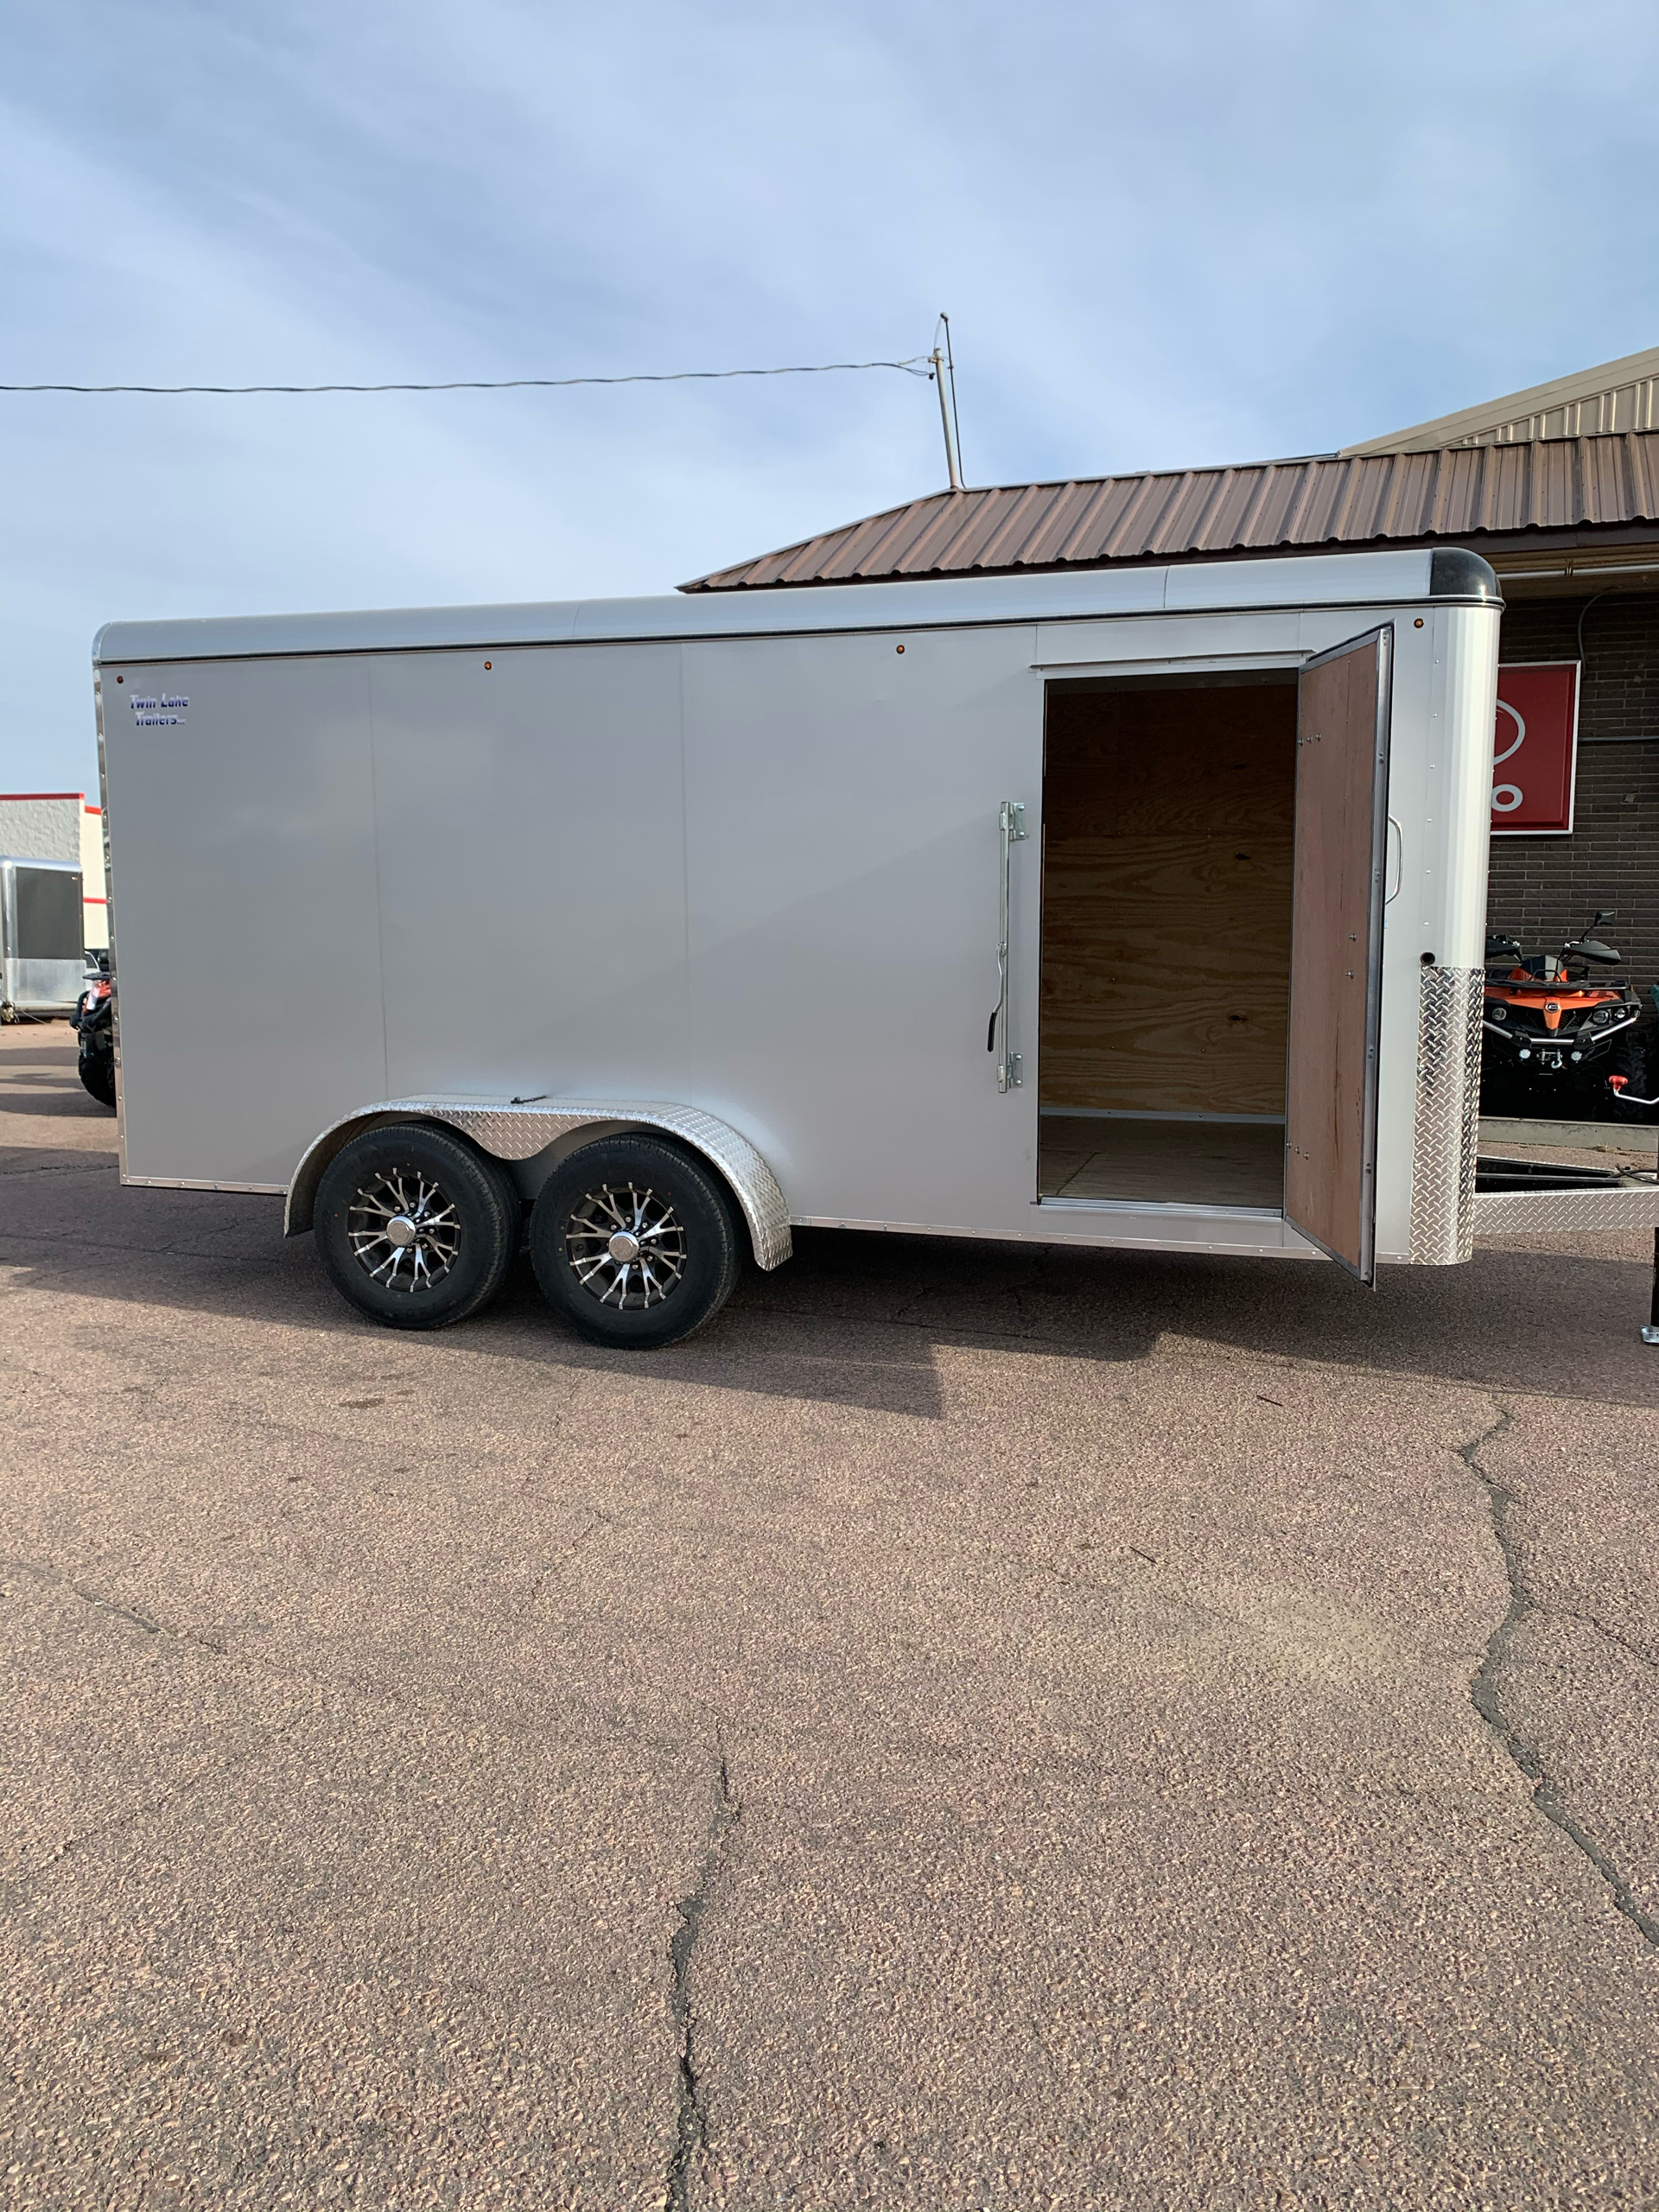 2021 Twin Lake Trailers LLC ENCLOSED 7X16 in Sioux Falls, South Dakota - Photo 4